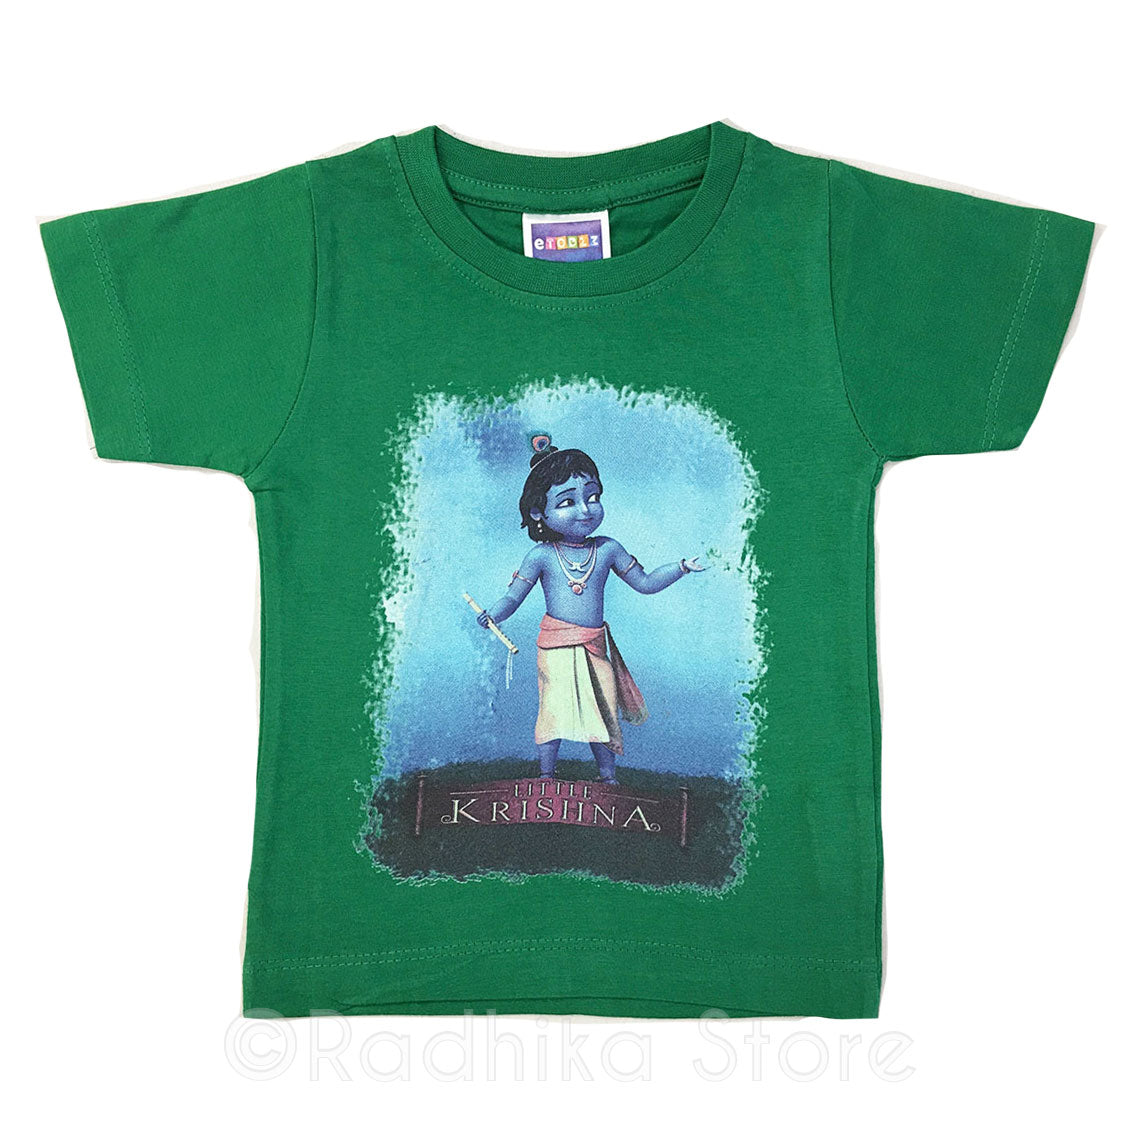 My Friend Little Krishna - Green-Short Sleeve- Size 6 to 12 Months